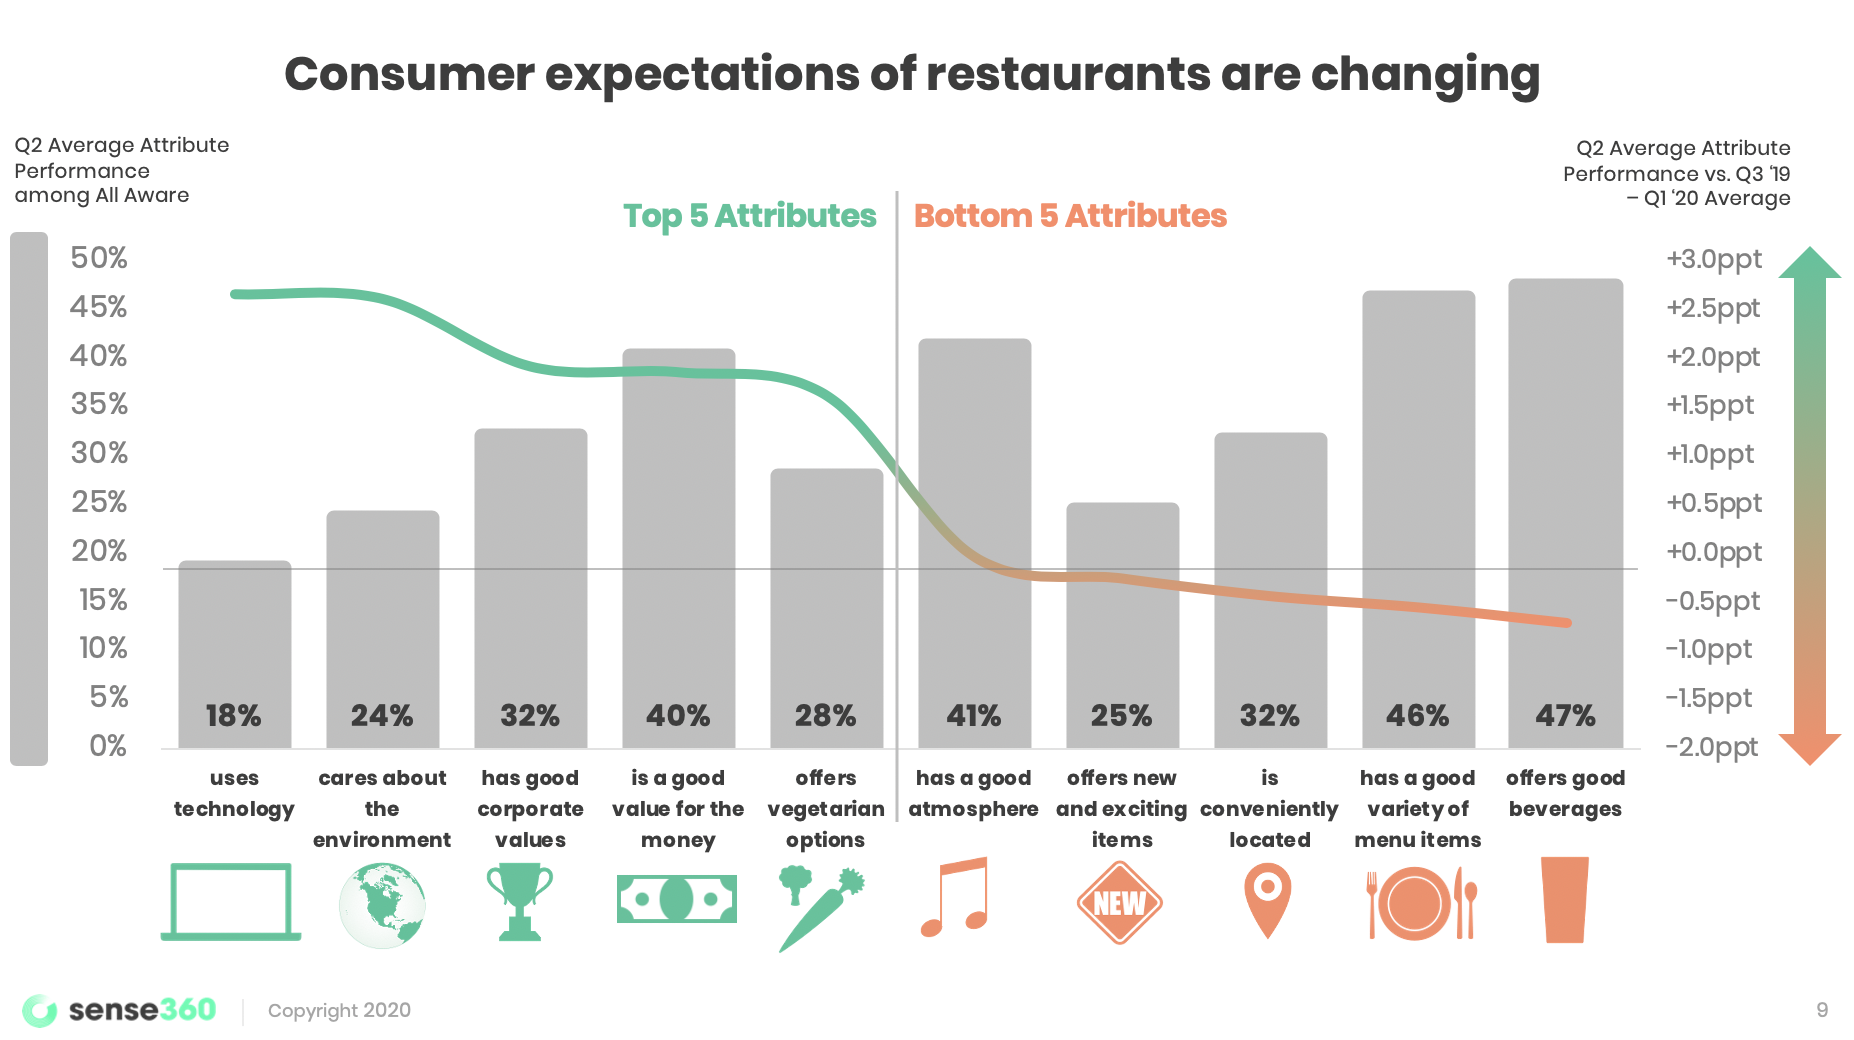 Consumer expectations of restaurants are shifting